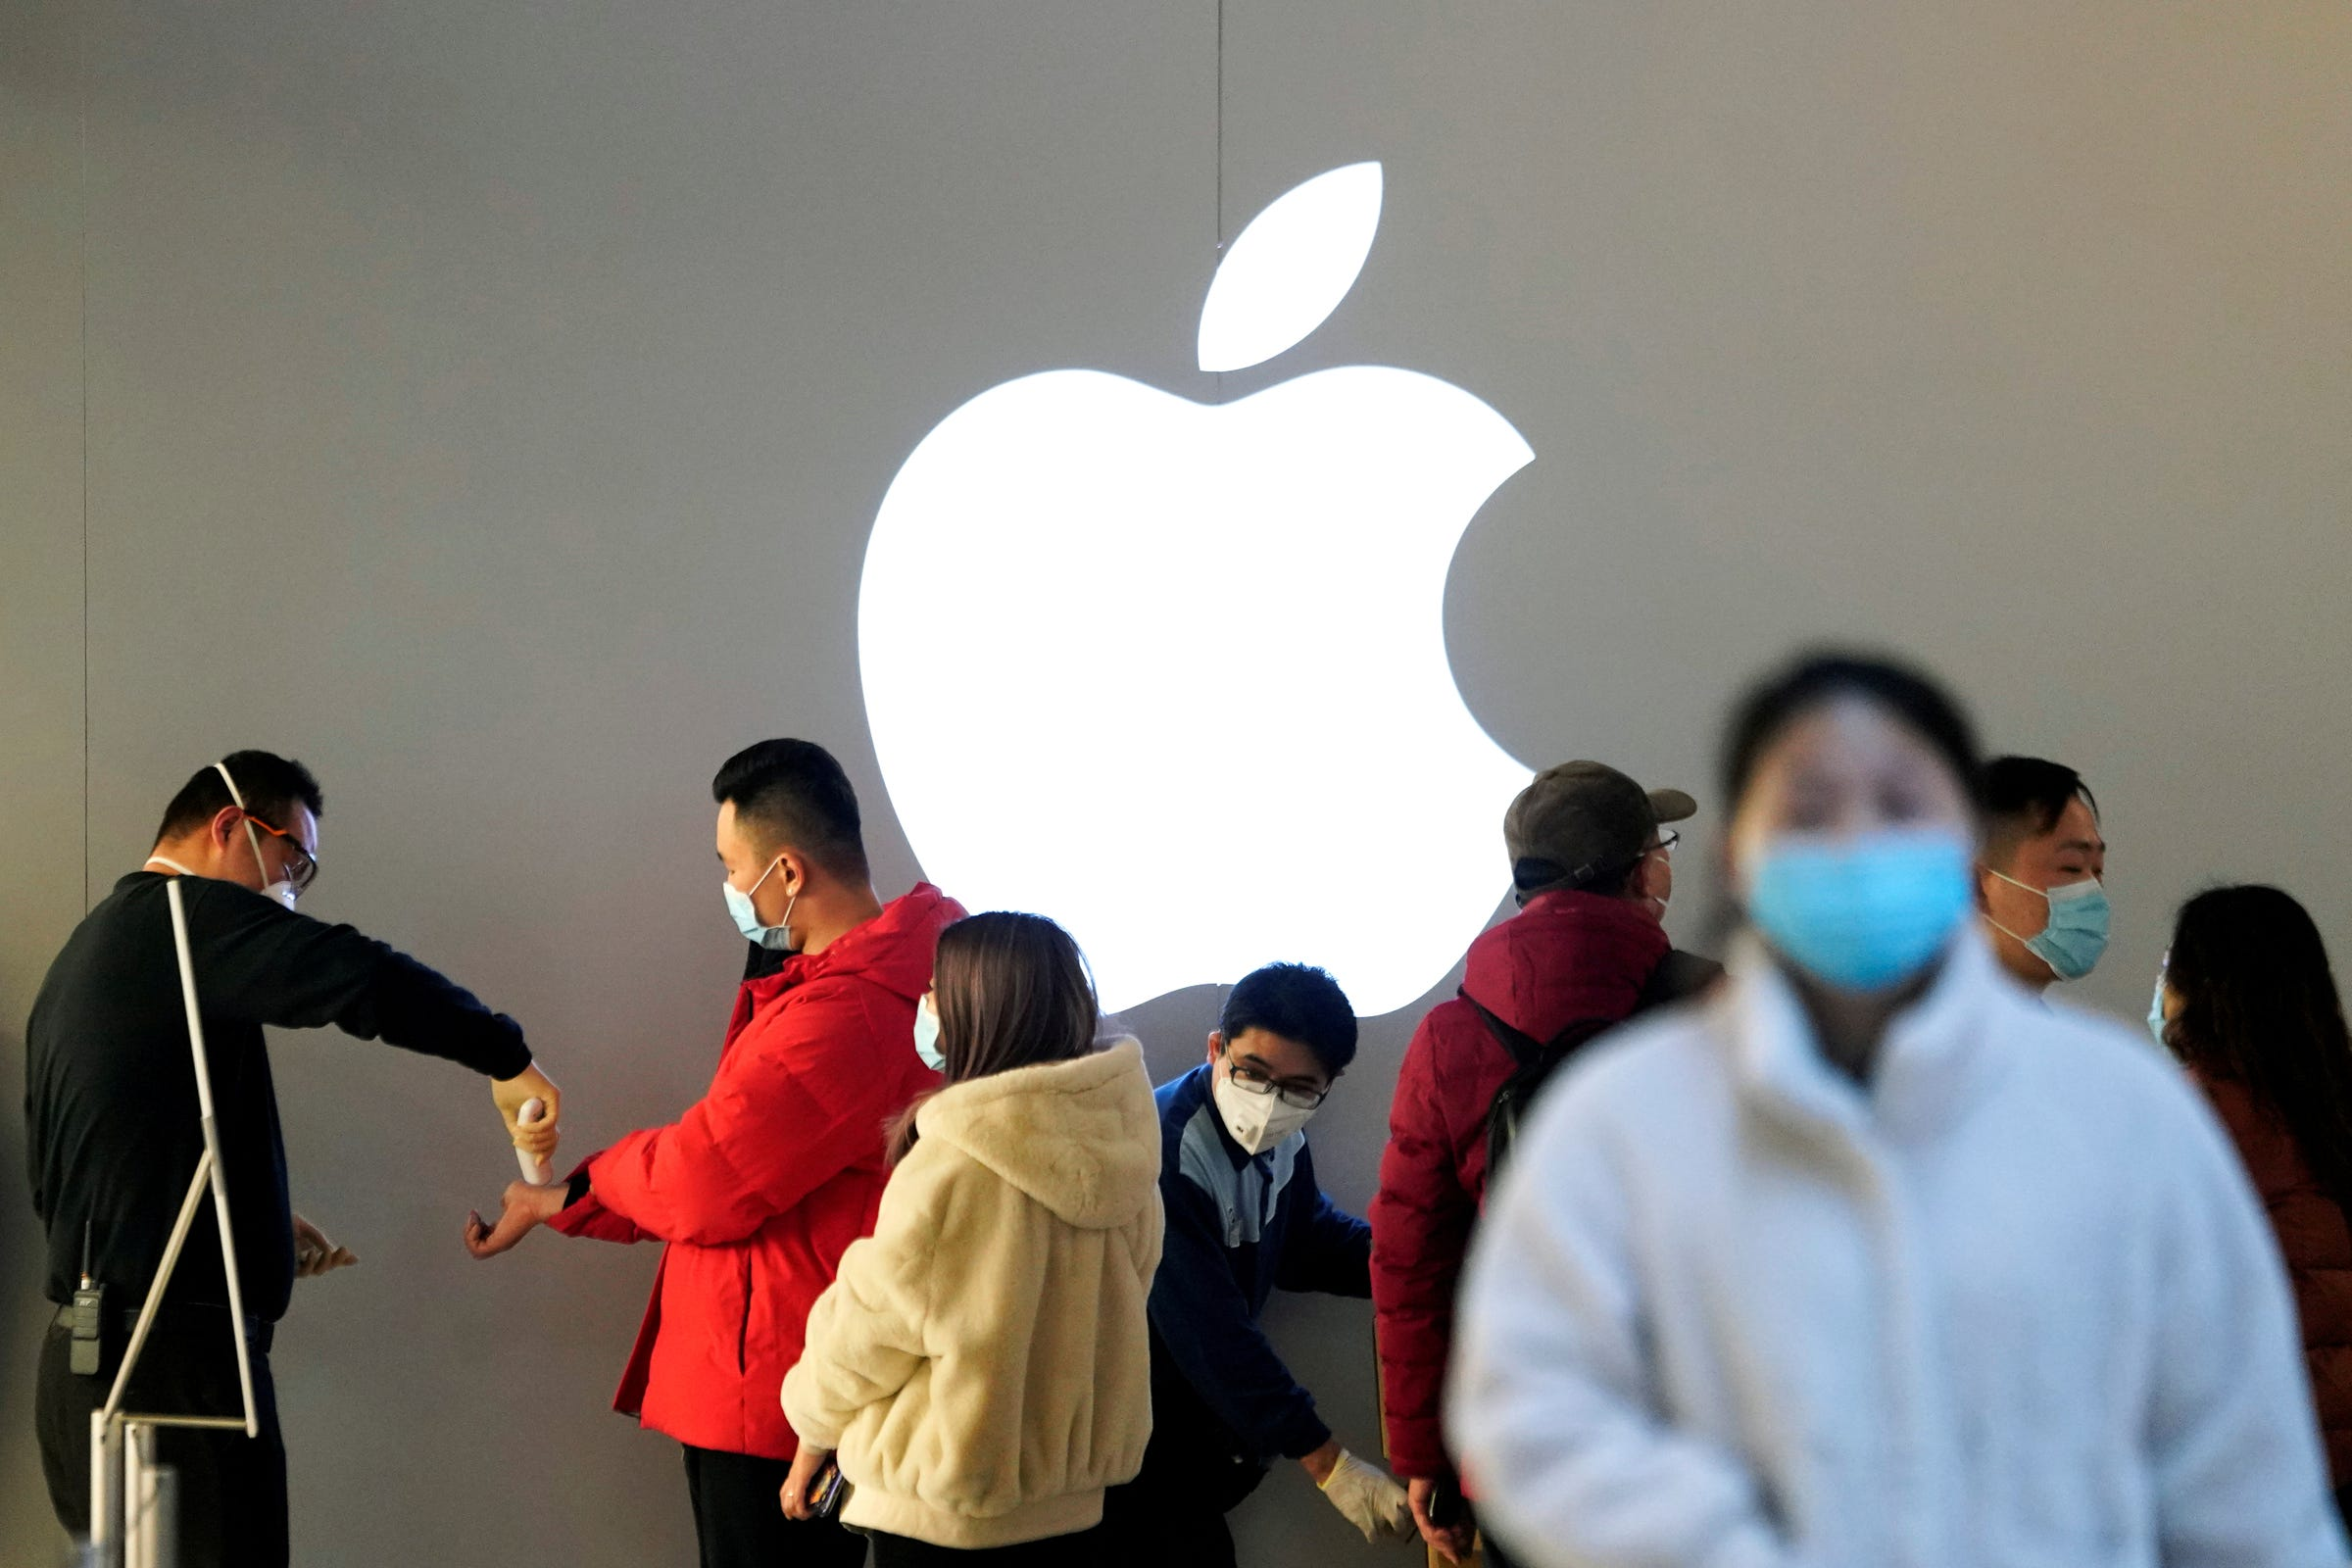 FILE PHOTO: People wearing protective masks wait for checking their temperature in an Apple Store, in Shanghai, China, as the country is hit by an outbreak of the novel coronavirus, February 21, 2020. REUTERS/Aly Song